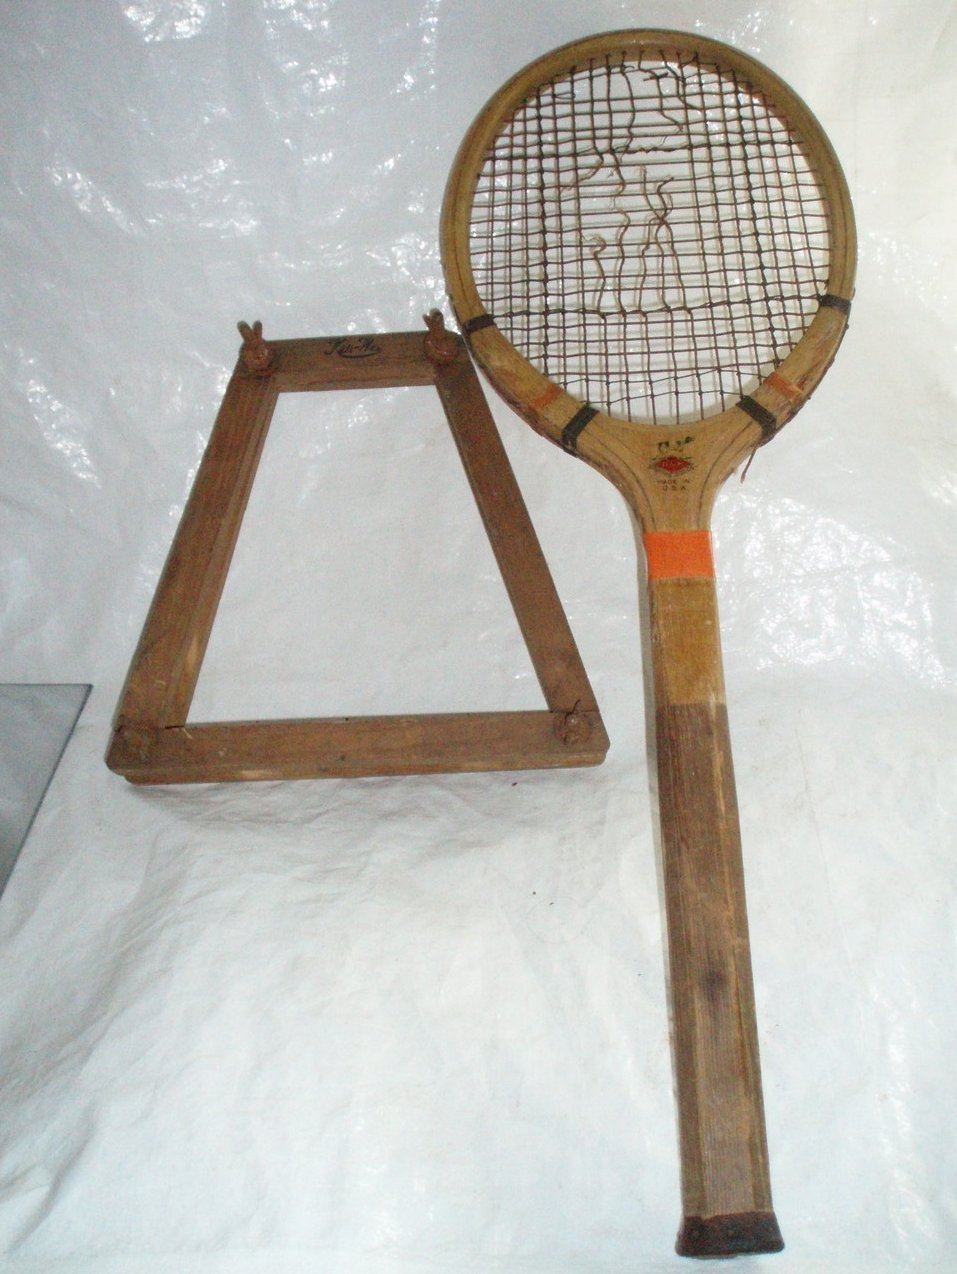 Draper Maynard Antique Regent Tennis Racquet and Head Frame.